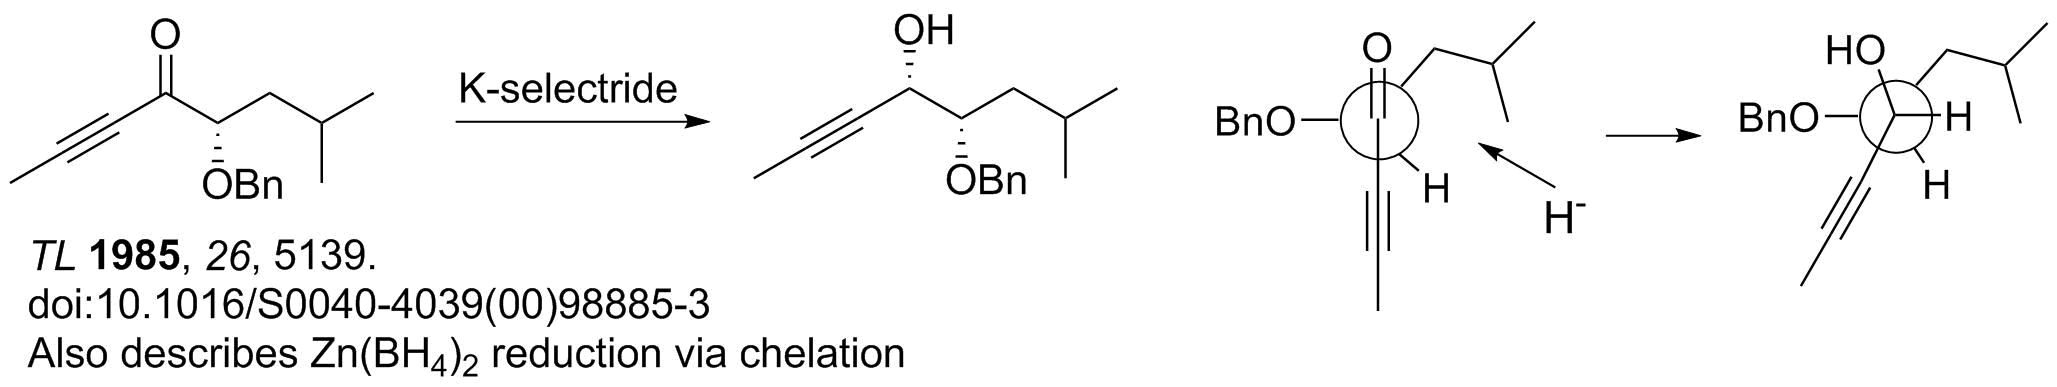 Carbonyl Addition 9